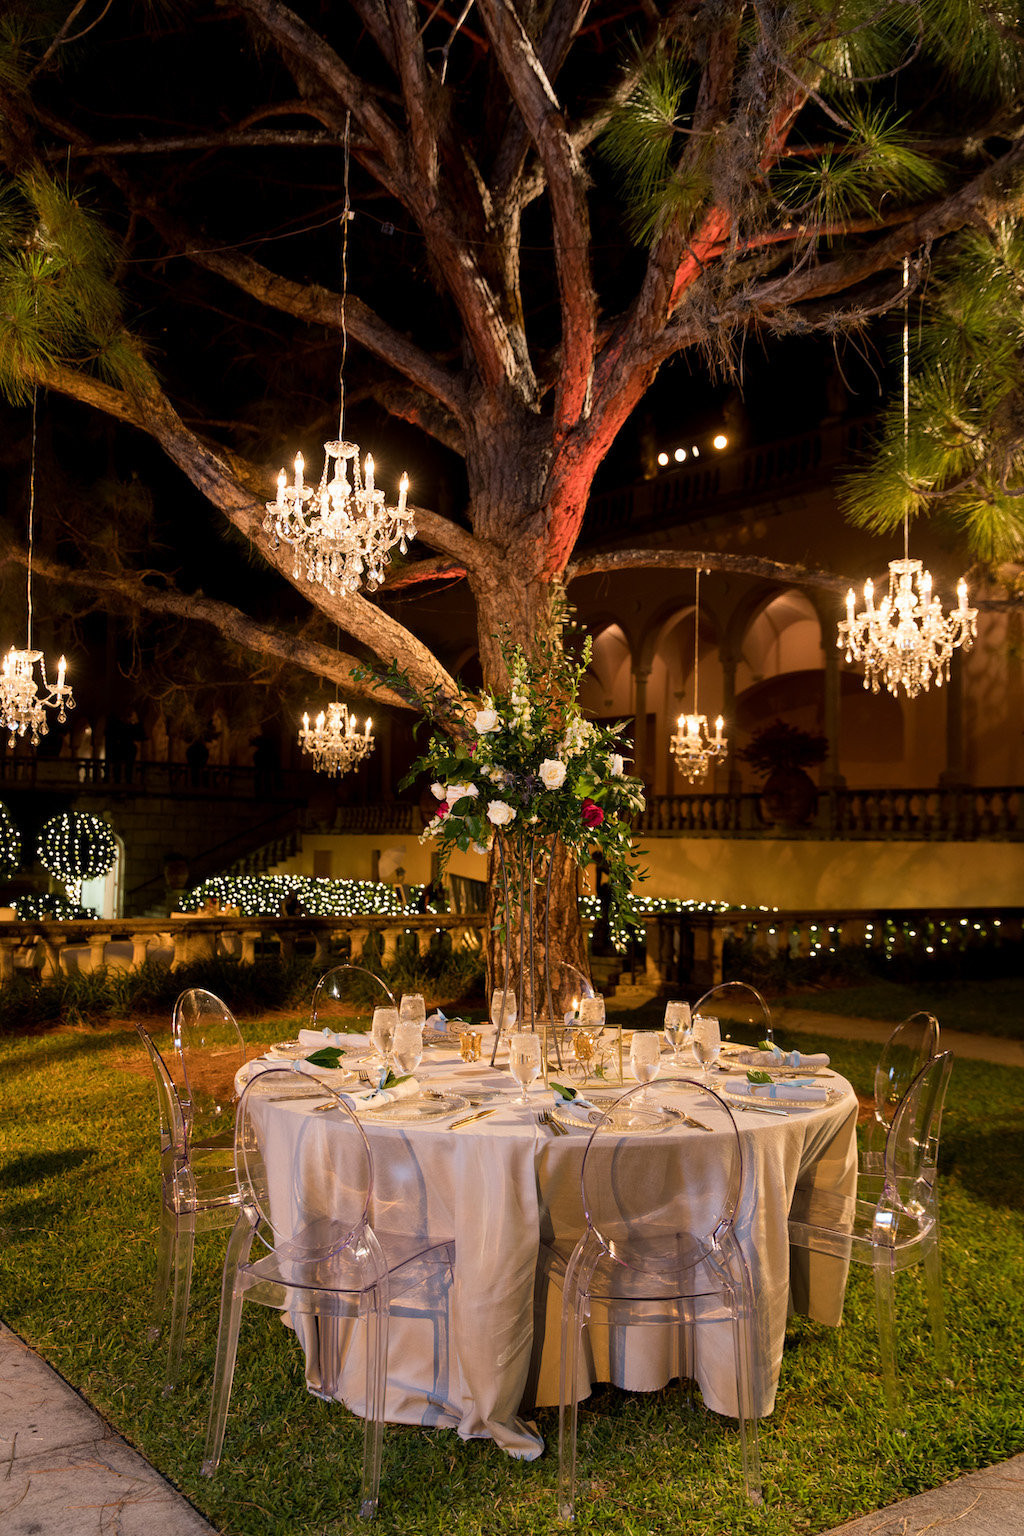 Nighttime Outdoor Garden Courtyard Wedding Reception Decor, Round Tables with Ivory Tablecloths, Ghost Chairs, Tall Greenery, White, Ivory, Red Floral Centerpiece, Crystal Chandeliers Hanging From Tree | Sarasota Wedding Venue Ringling Museum | Tampa Bay Wedding Planner NK Weddings